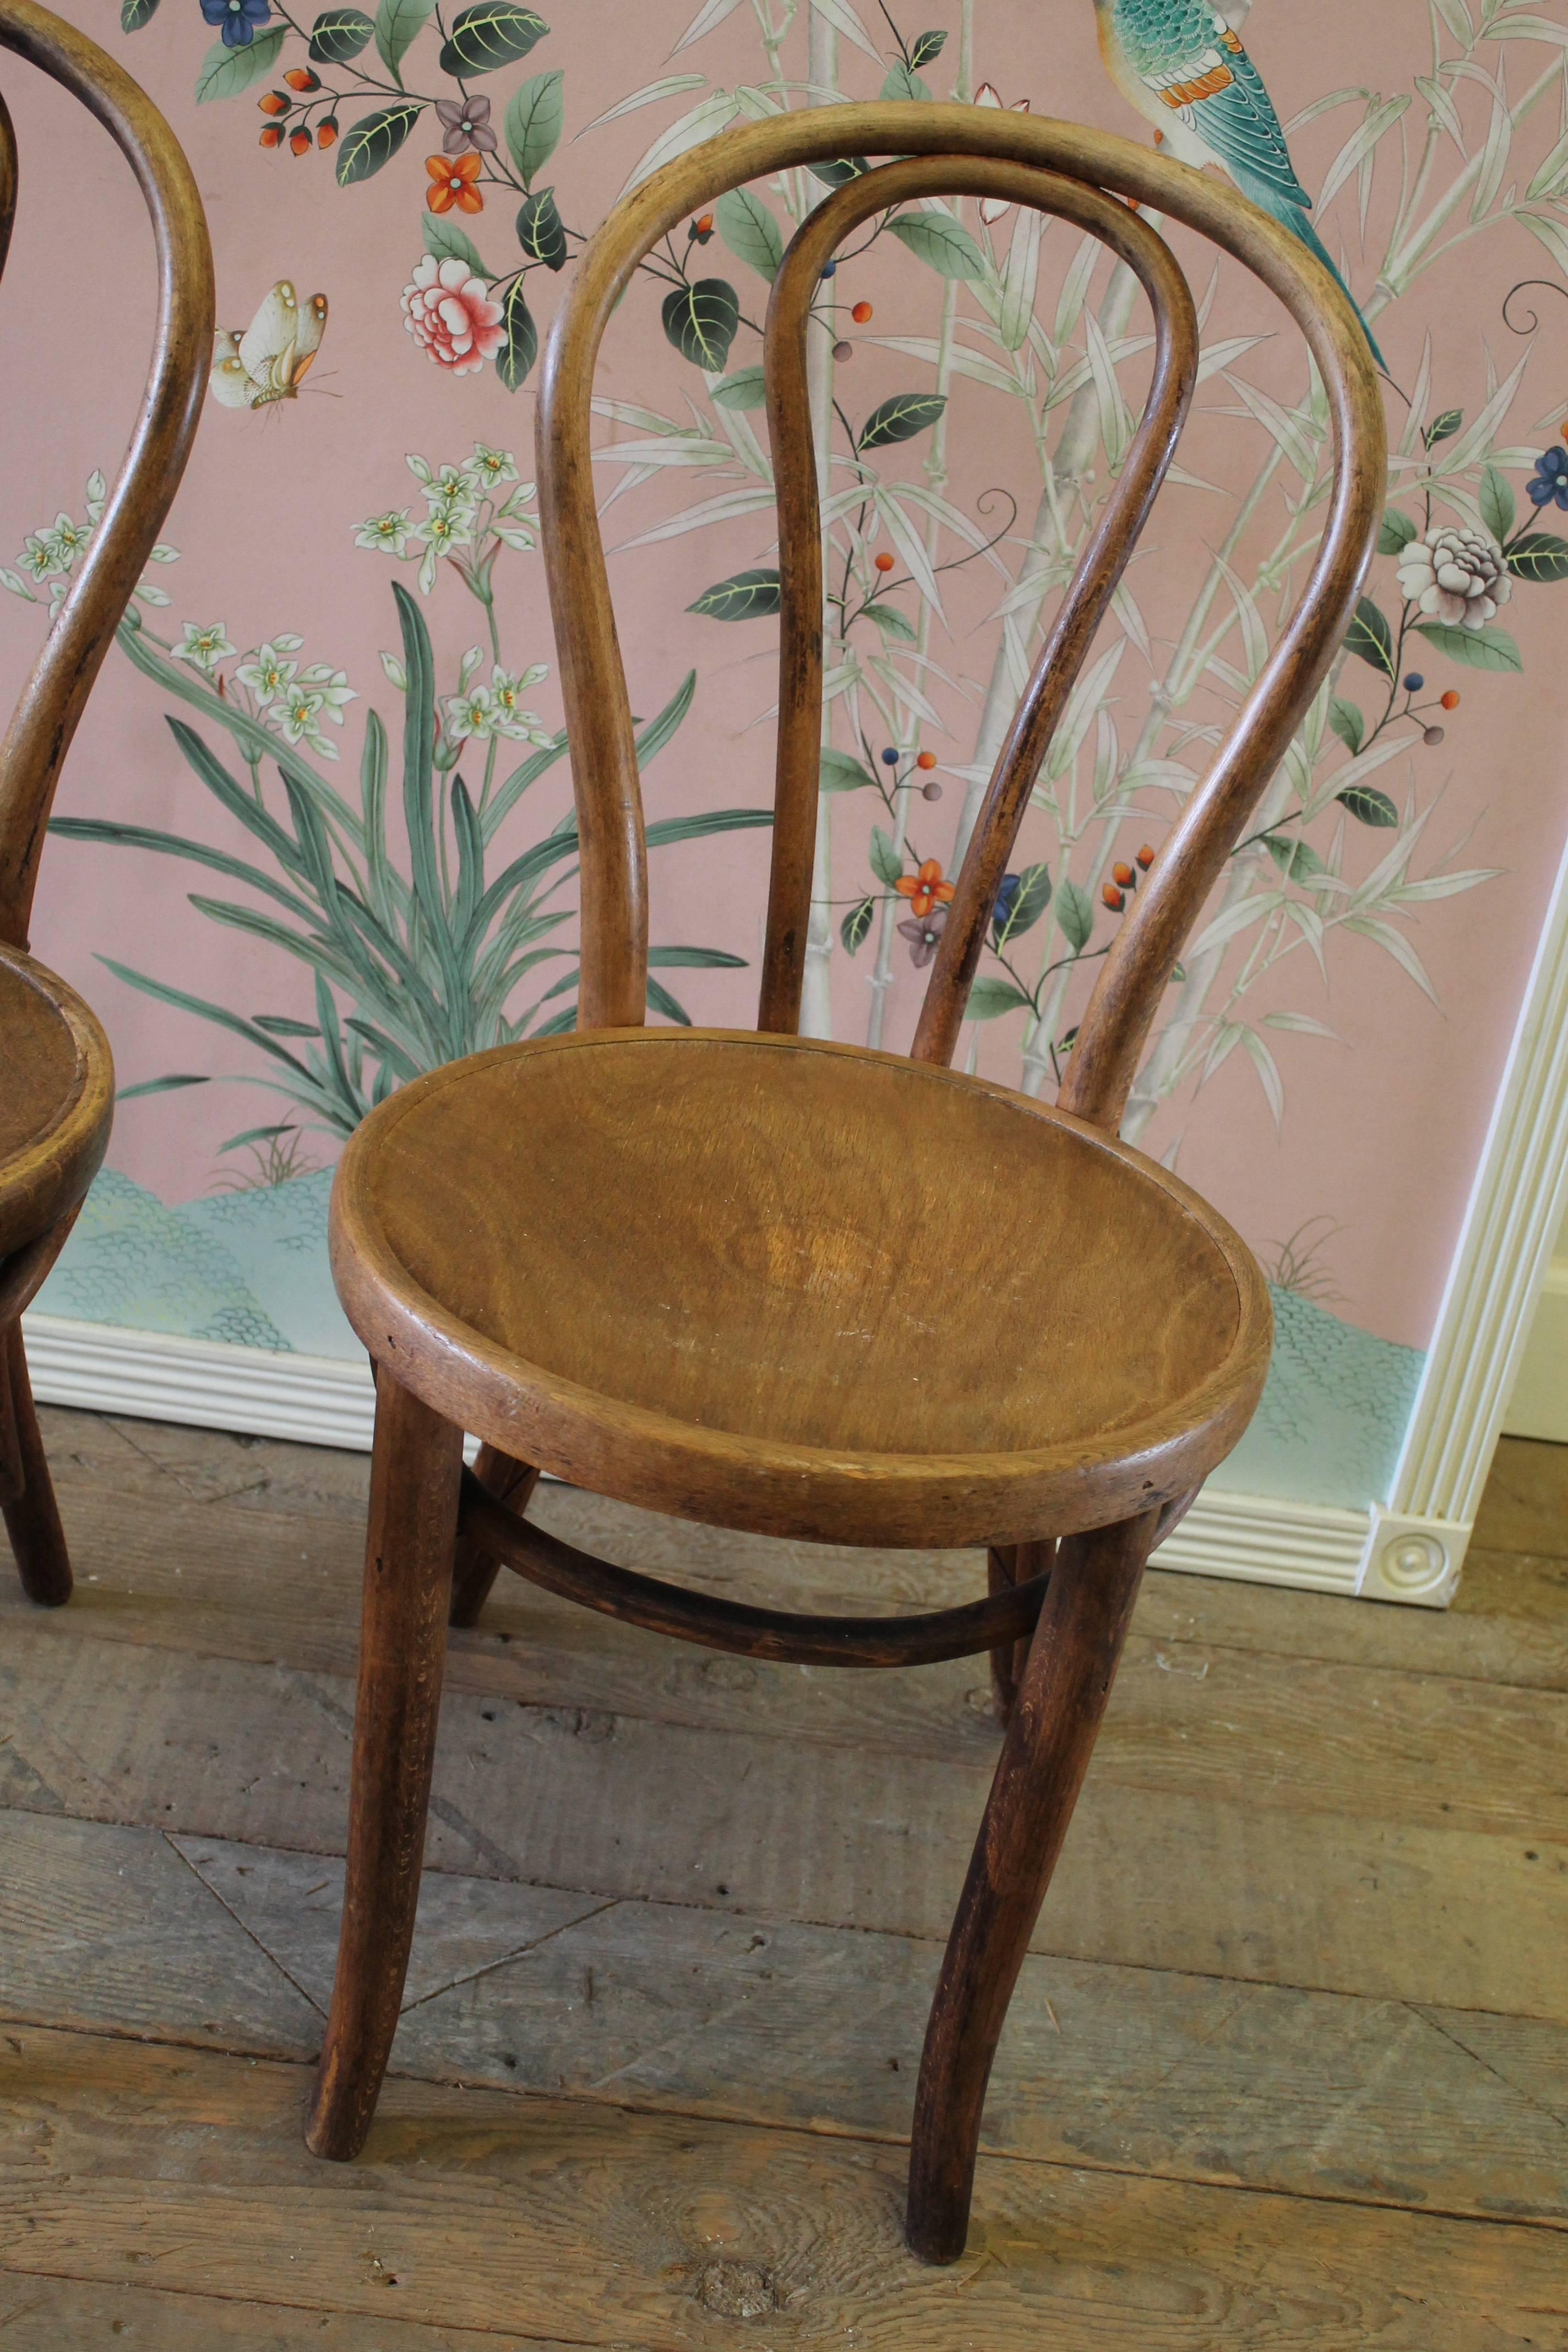 Pair Of Vintage Bentwood Chairs With Embossed Wood Seat Each Chair Is Very  Sturdy, With